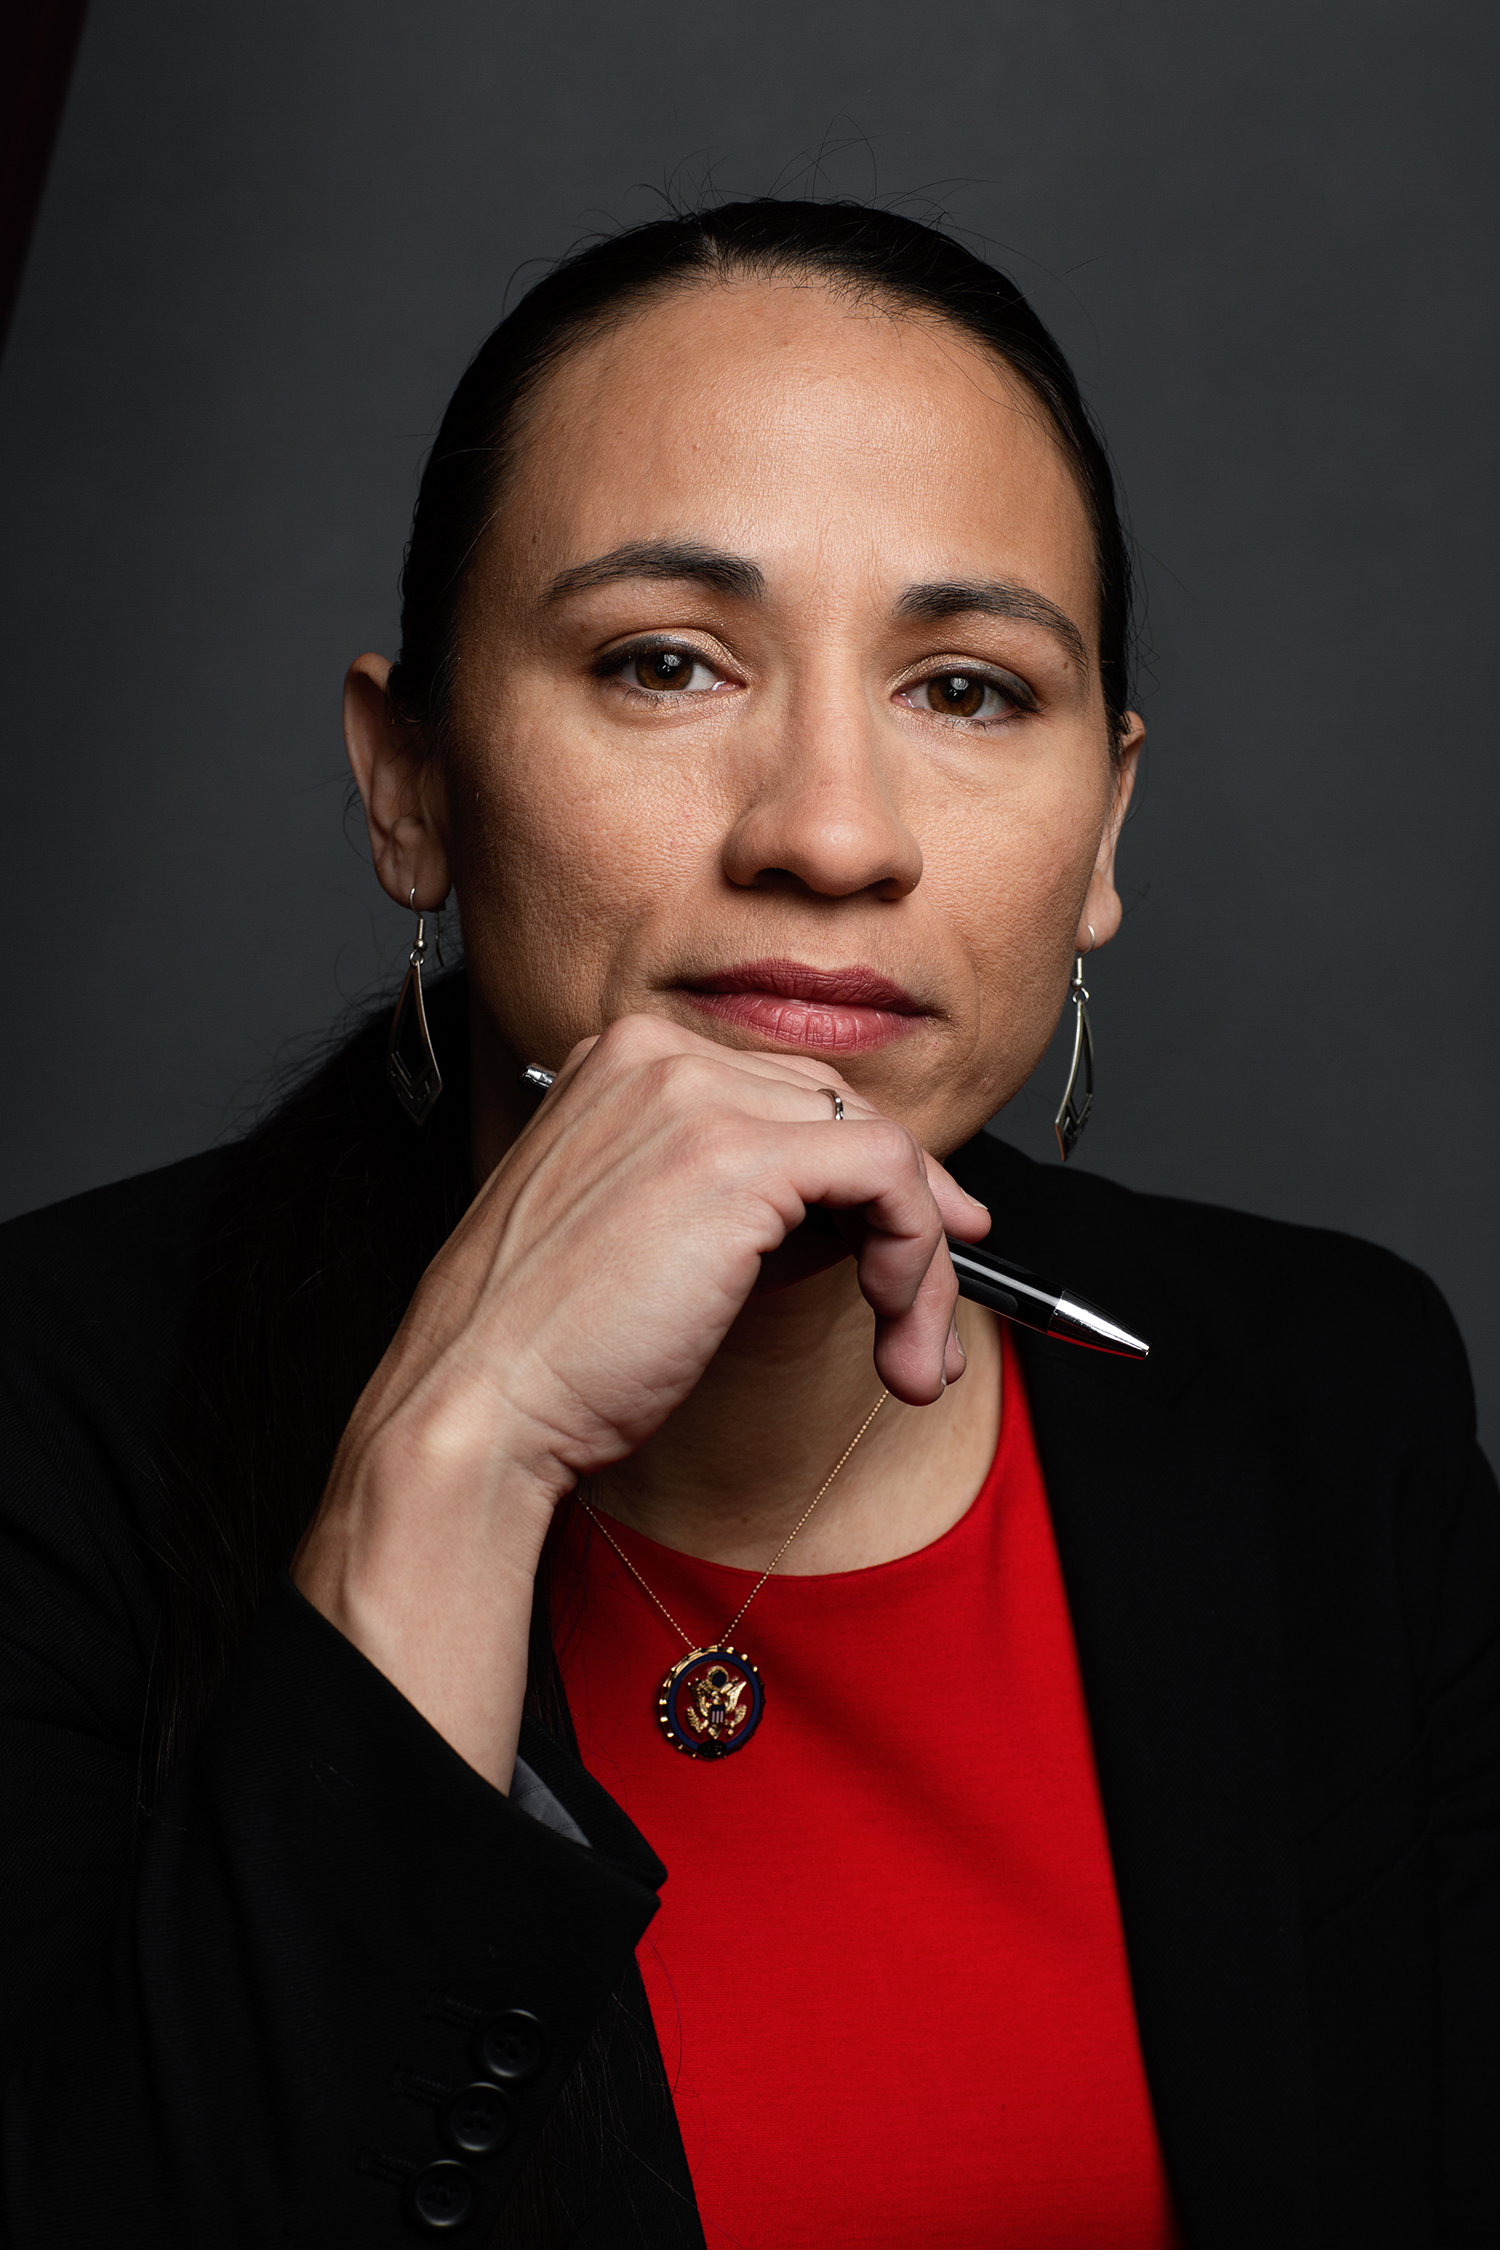 Sharice Davids *****HOLD FOR WOMEN IN CONGRESS PROJECT**** Sharice Lynnette Davids  is an American attorney, former mixed martial artist and politician serving as the U.S. Representative for Kansas's 3rd congressional district since 2019. A member of the Democratic Party and is an enrolled member of the Ho-Chunk (Winnebago) nation. Elizabeth D. Herman for The New York Times                              NYTCREDIT: Elizabeth D. Herman for The New York Times